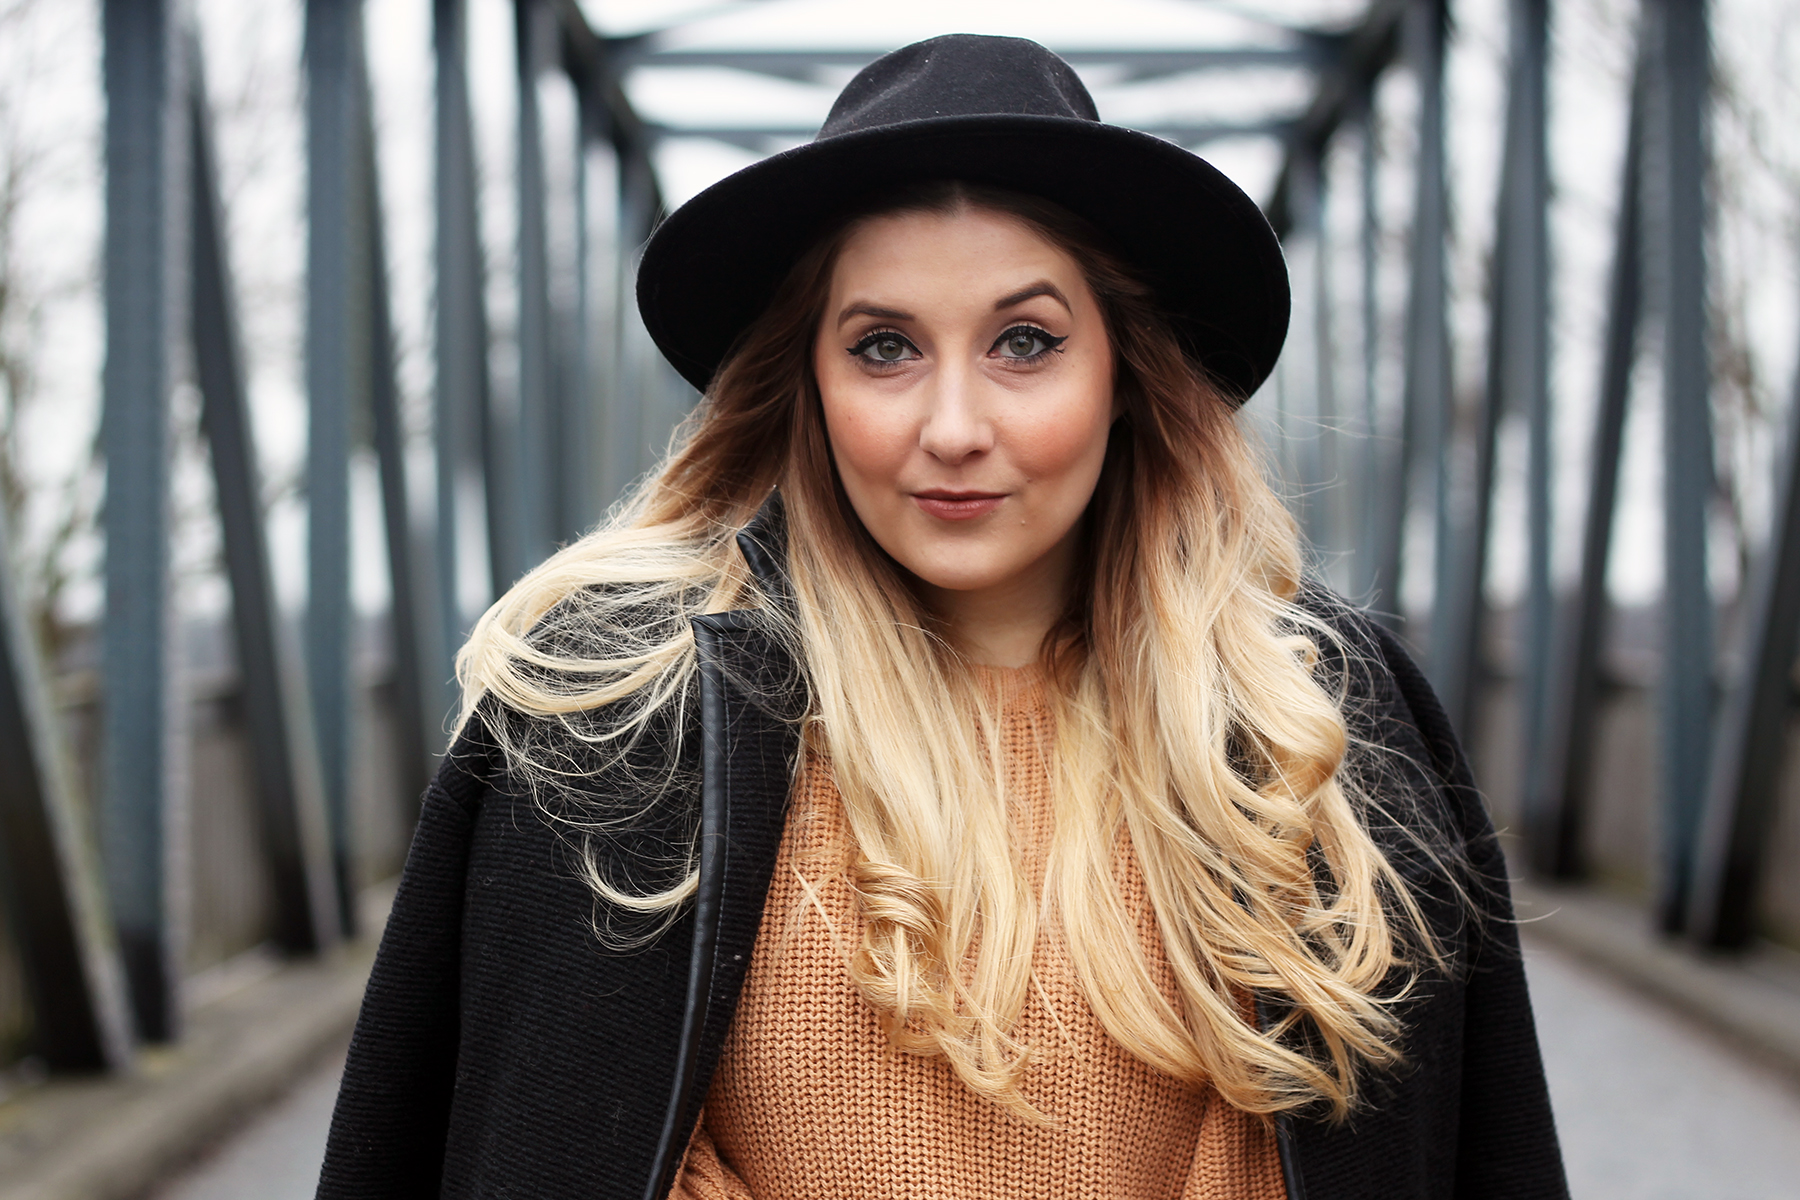 outfit-modeblog-fashionblog--hut-ombre-haare-locken-pullover-edited